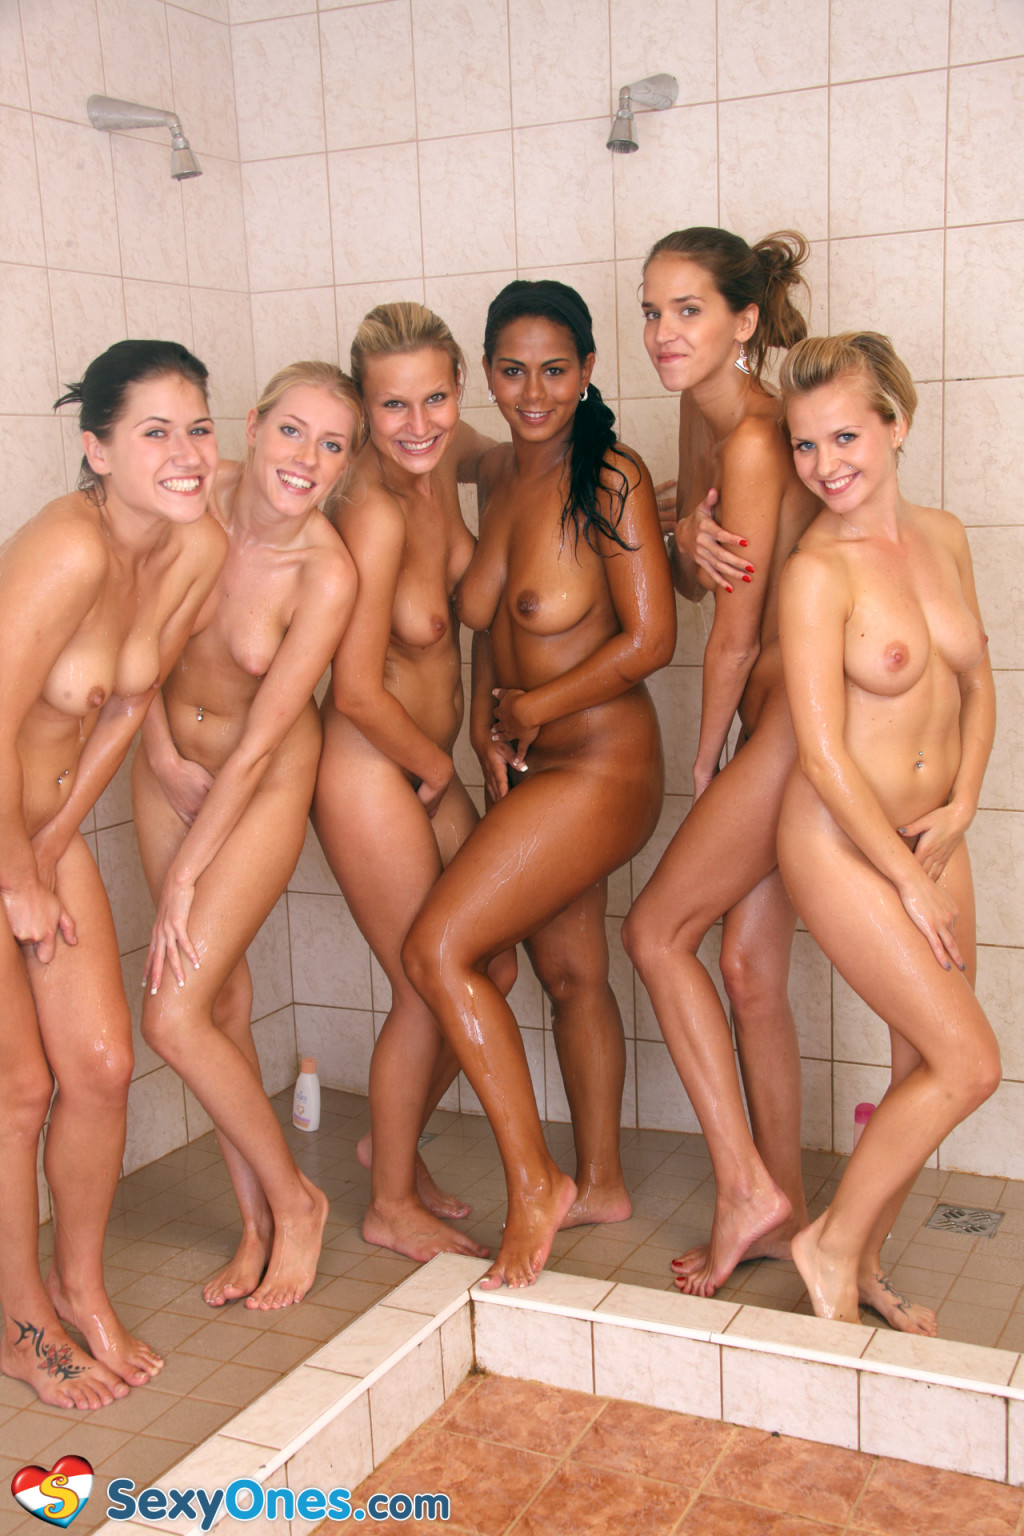 Nude group shower movie scene